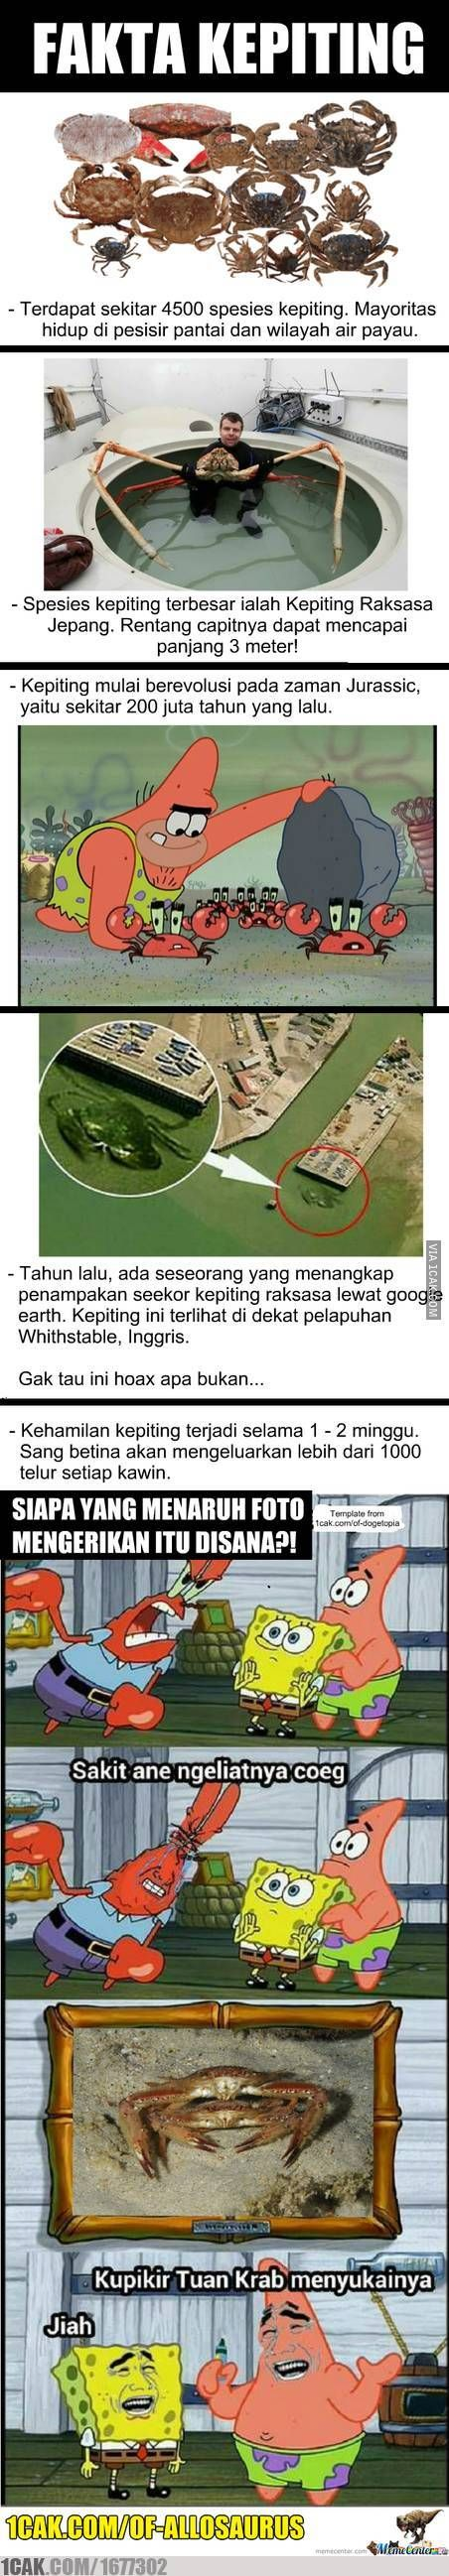 Fakta Kepiting Meme Comic Indonesia Pinterest